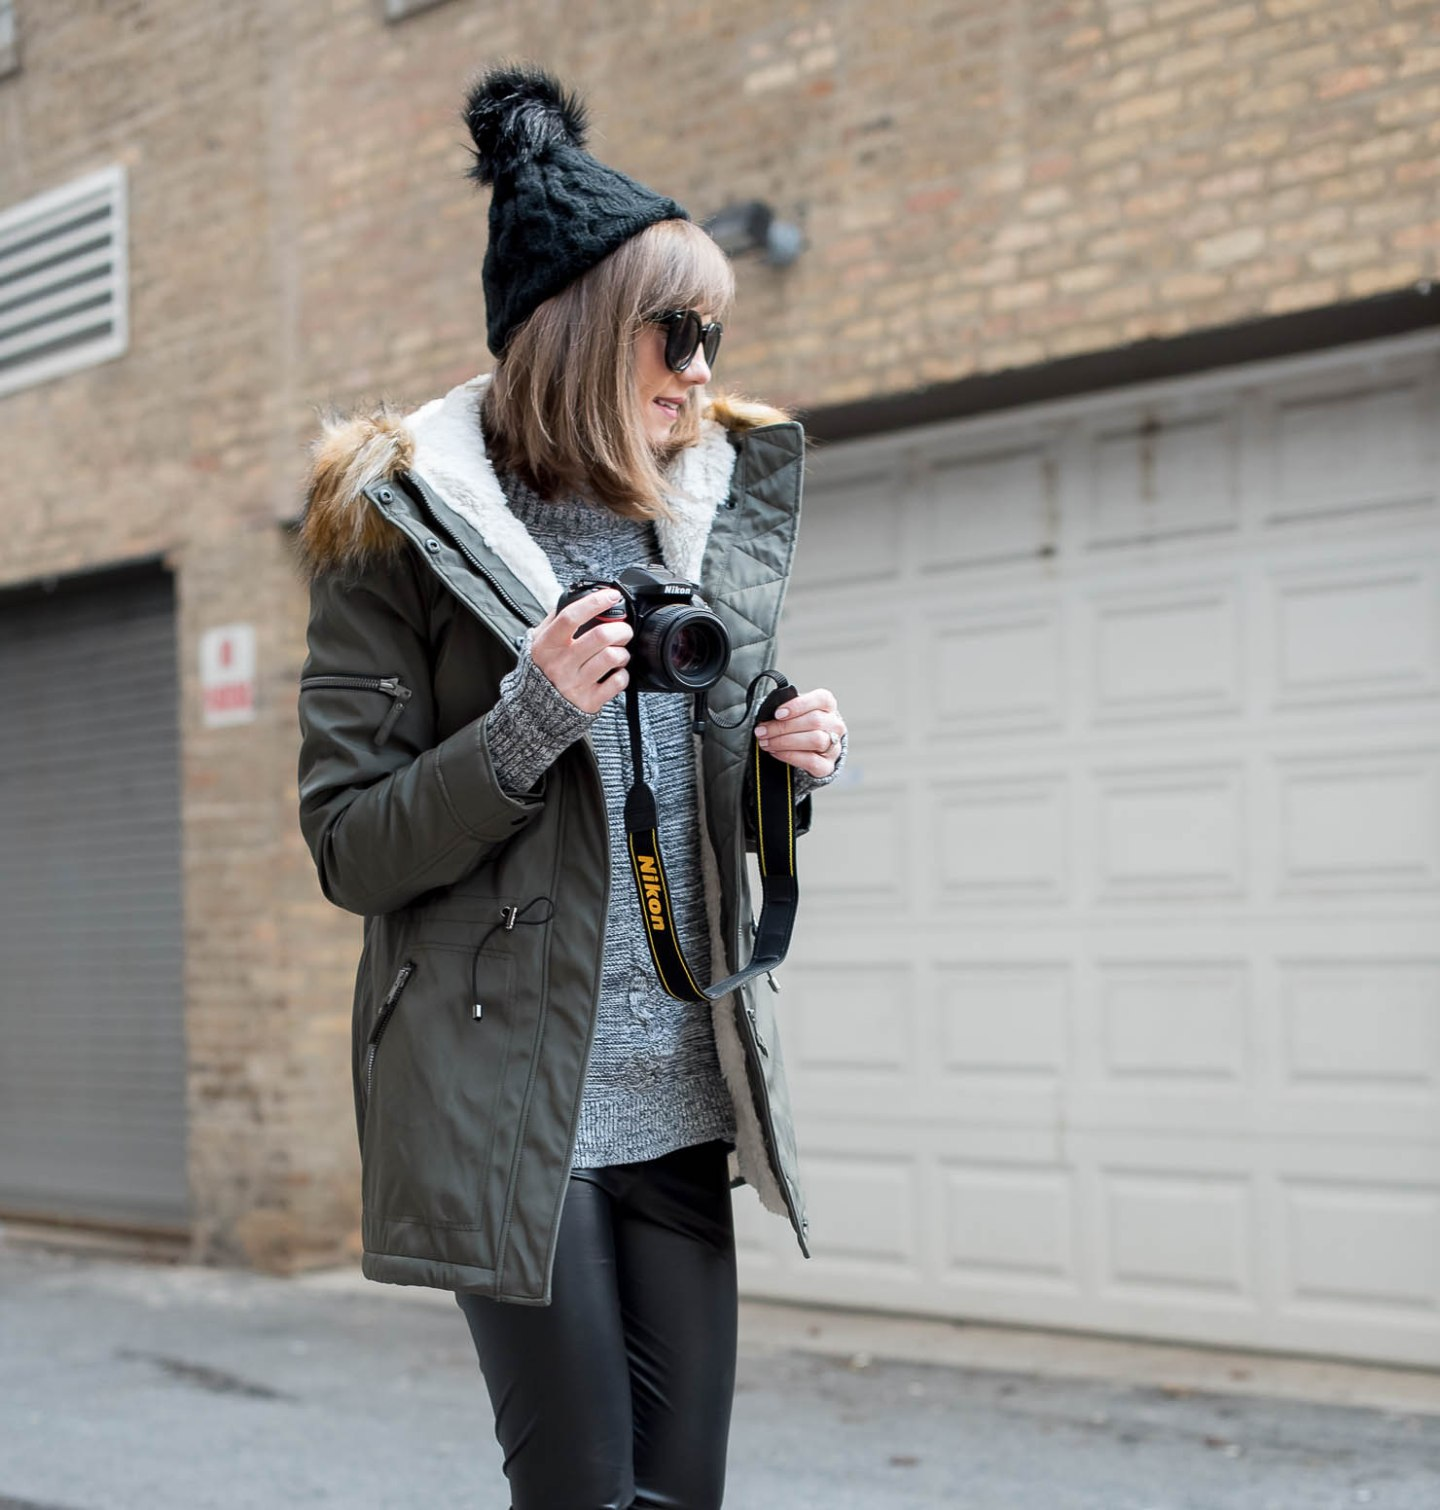 behind-the-scenes-of-a-fashion-blogger-the-best-parka-for-a-chicago-winter-what-camera-do-I-use-Nikon-D7200